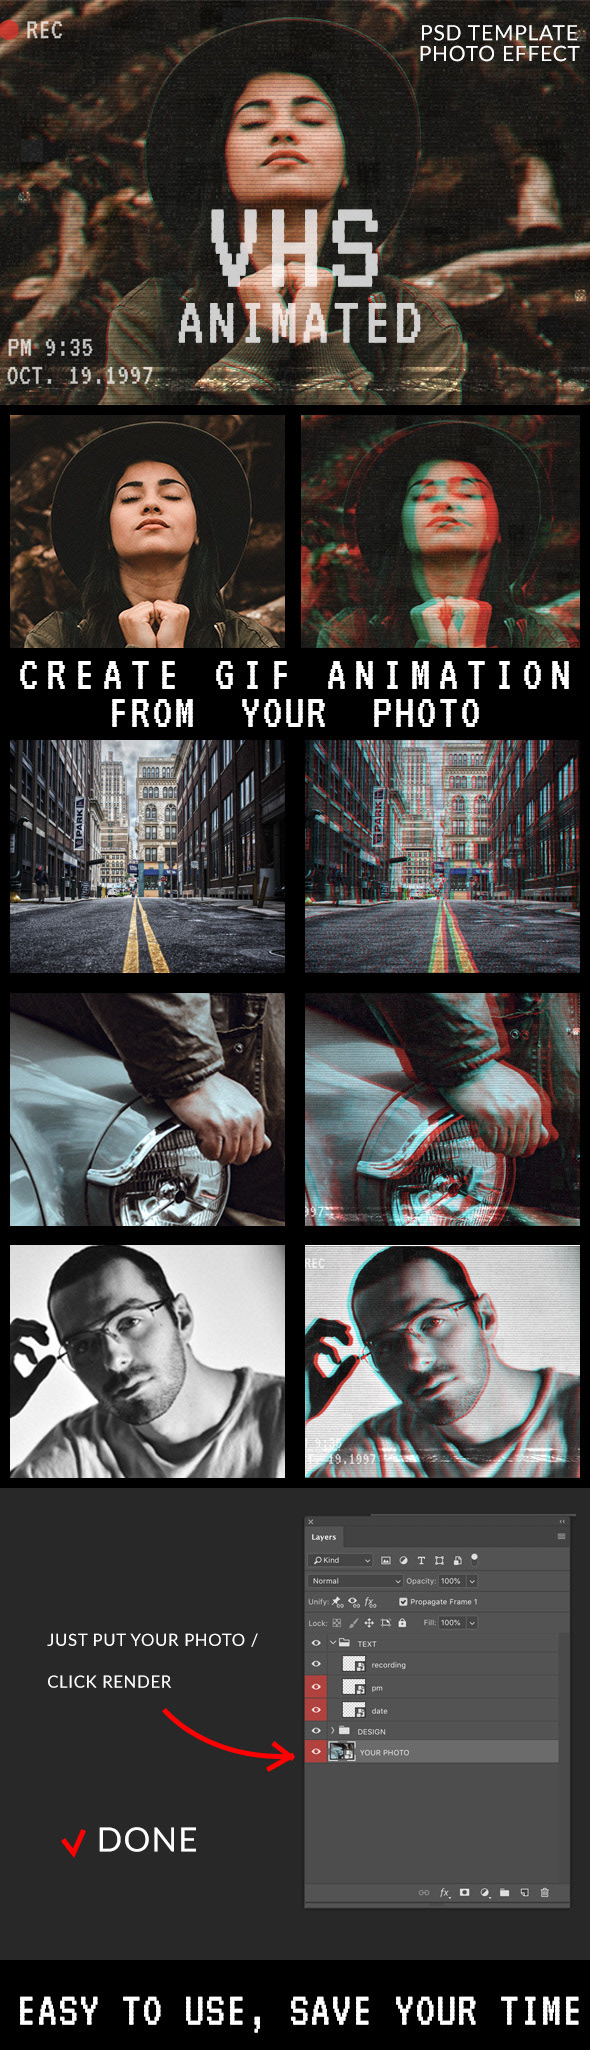 Animated VHS Effect Photoshop Template - 1